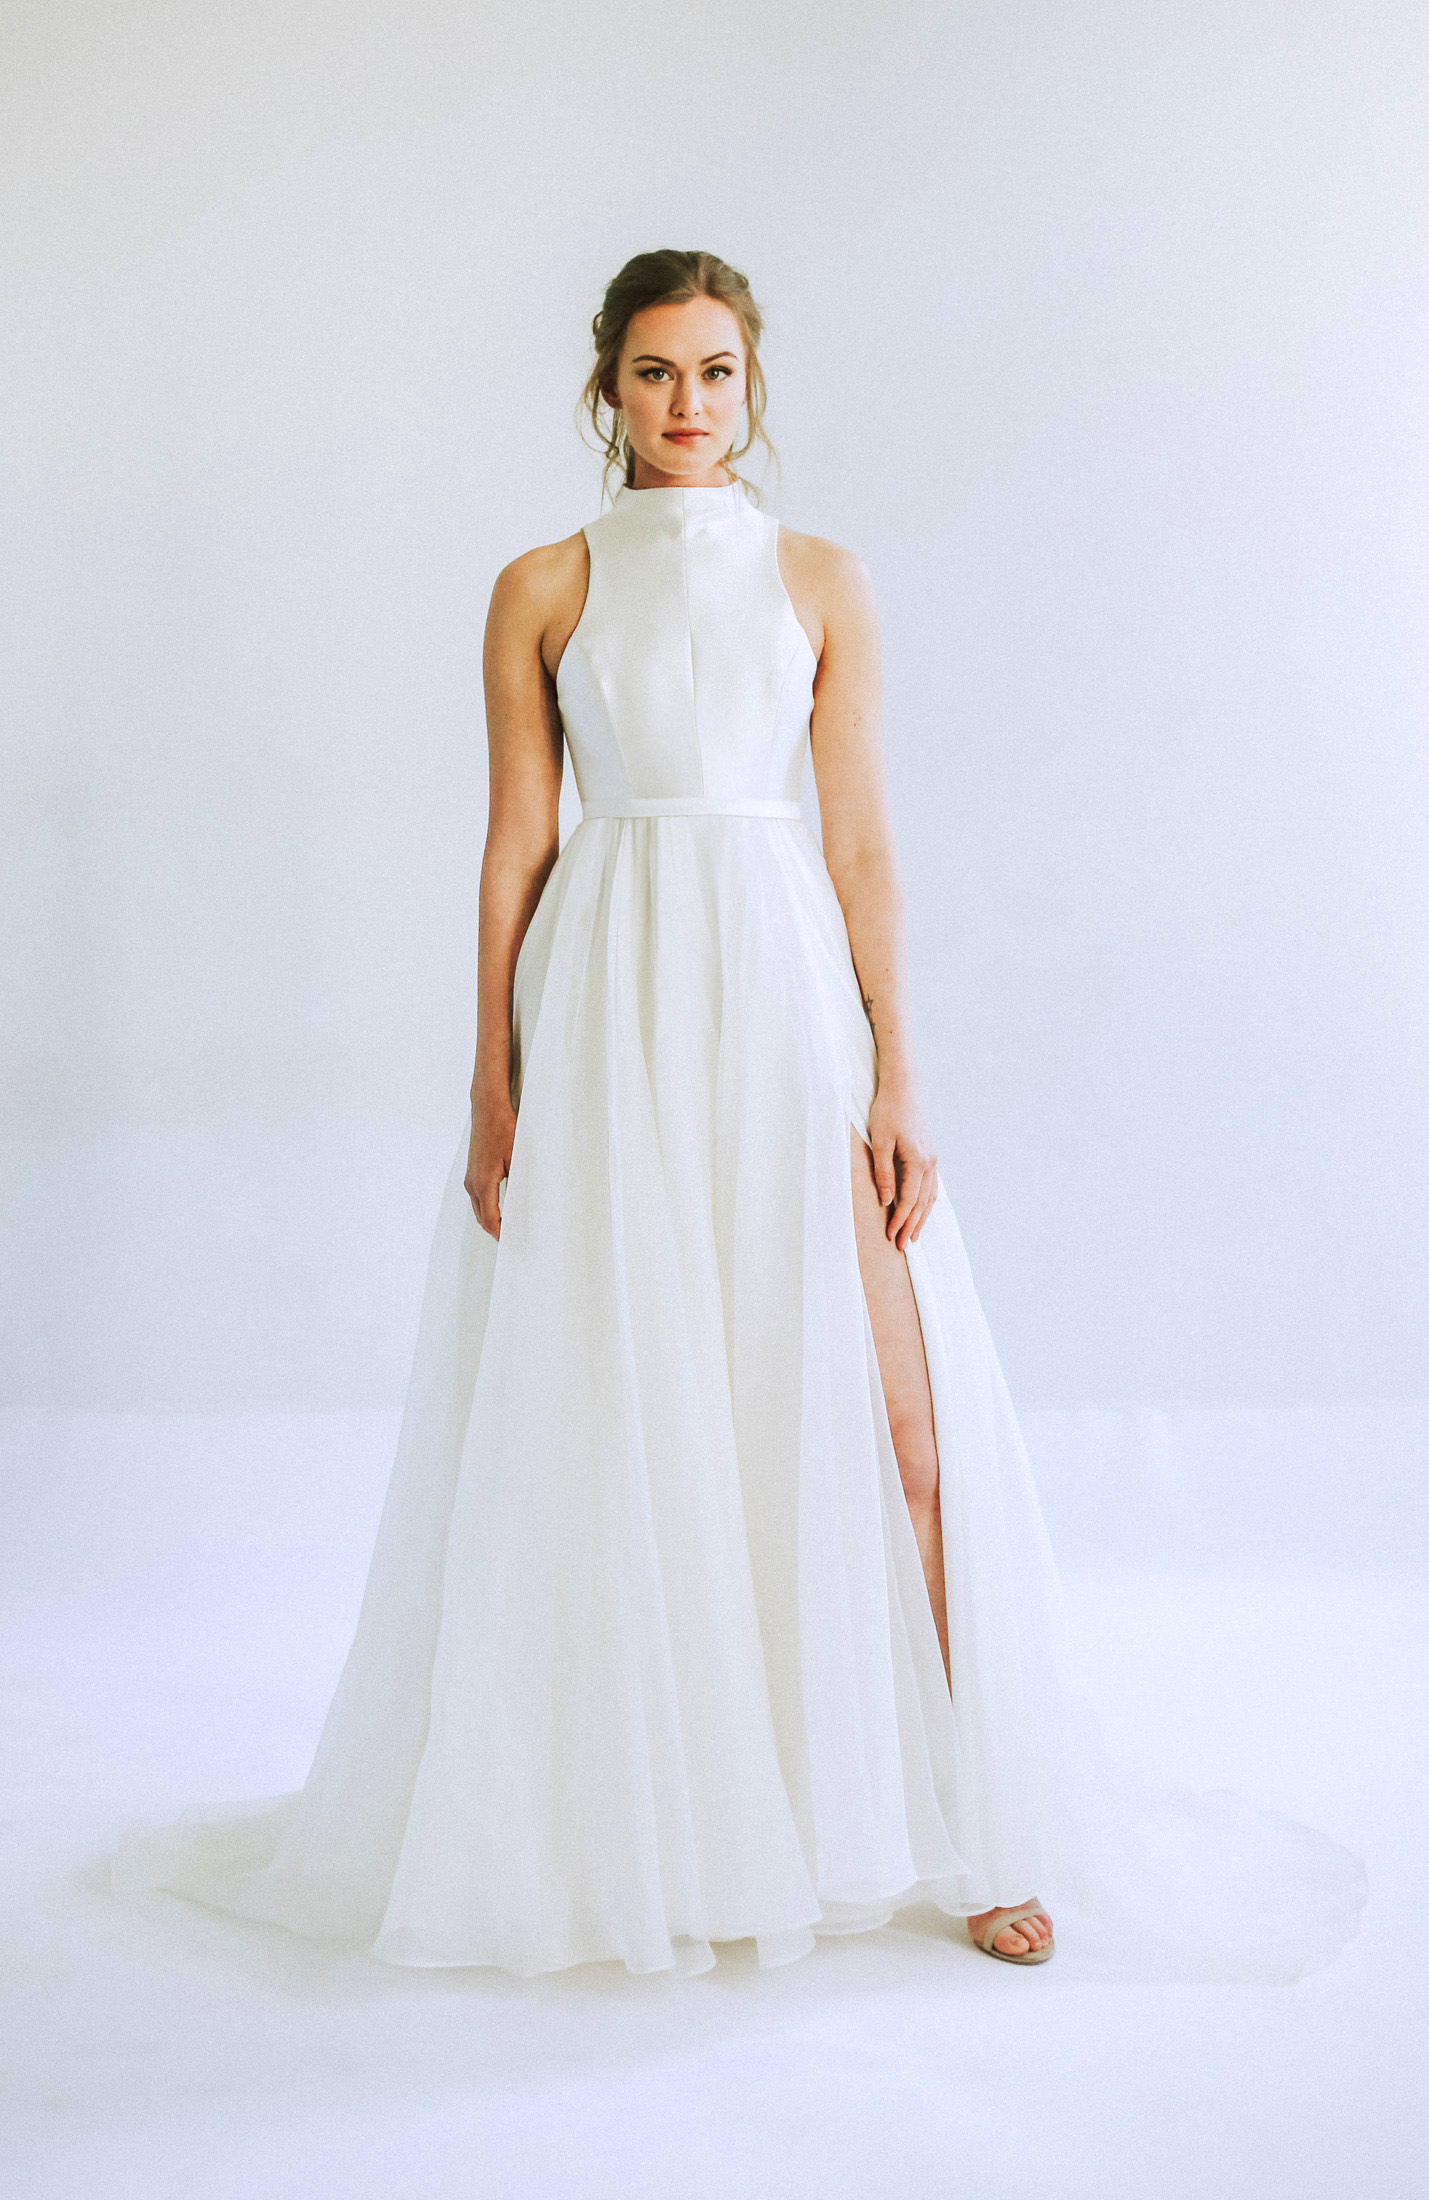 leanna marshall halter top sleeveless wedding dress spring 2020